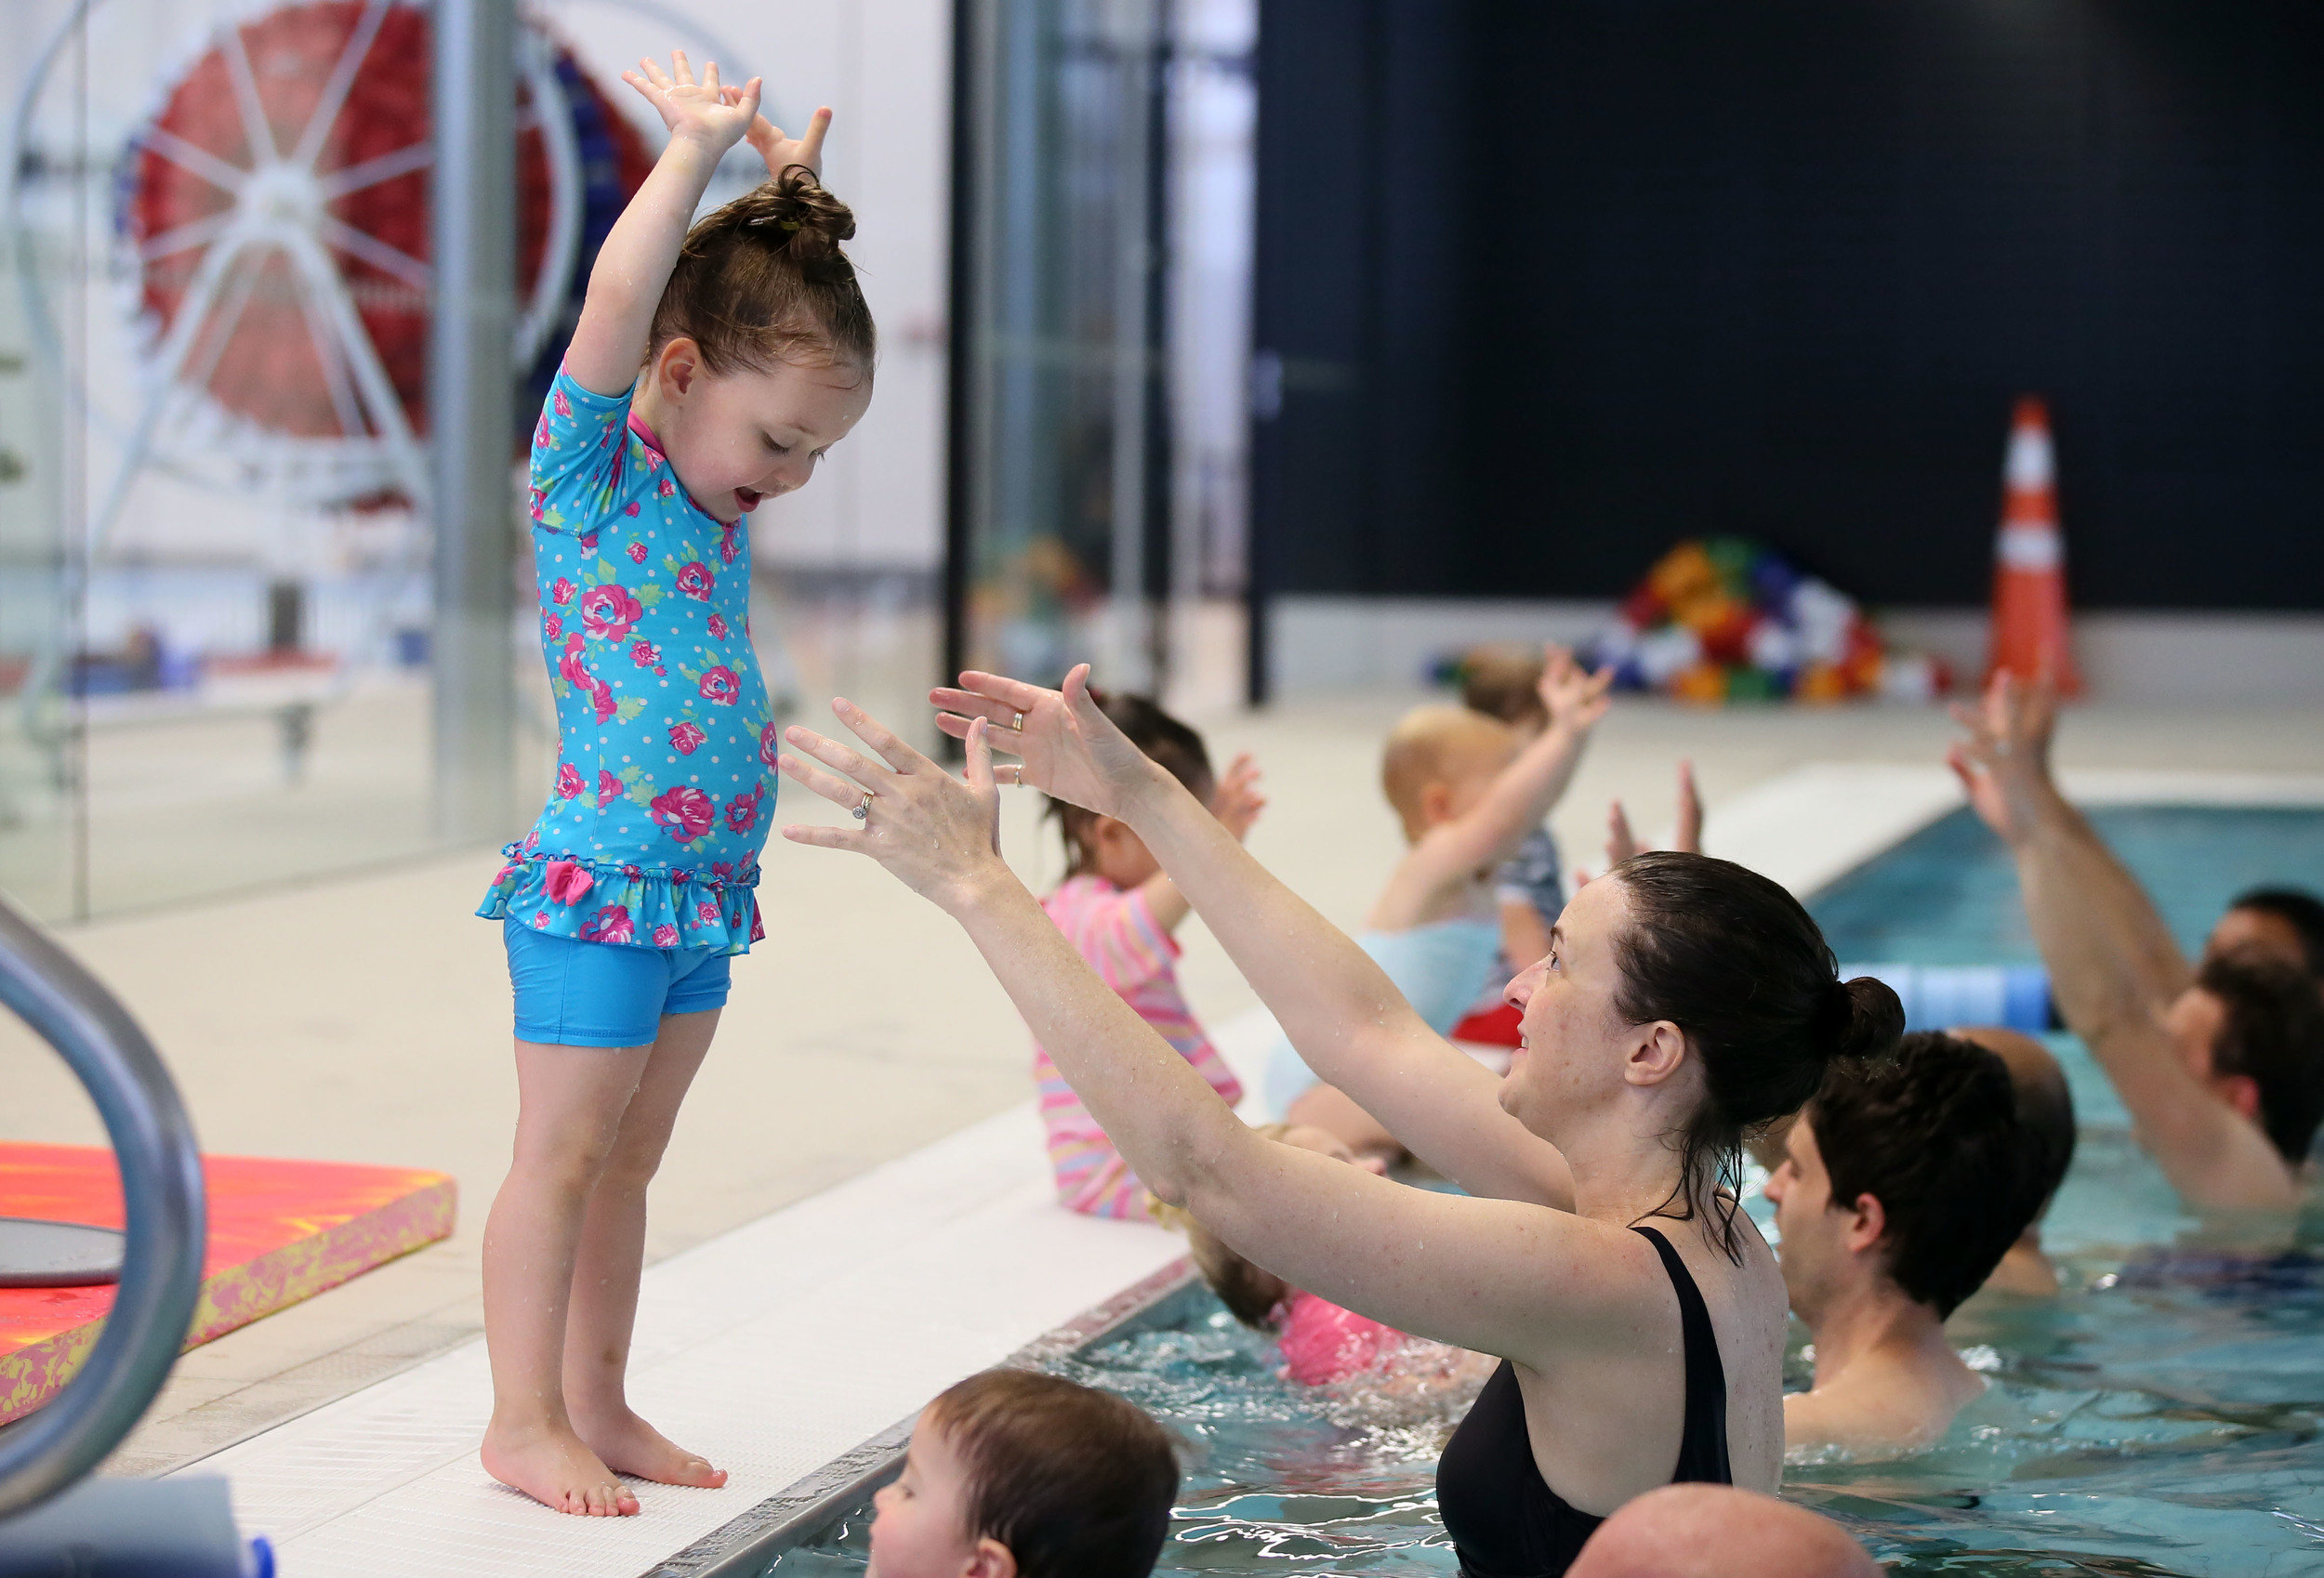 """Highly recommend! Excellent staff and facilities. I've been very impressed. My daughter and I are both loving her swim lesson."""